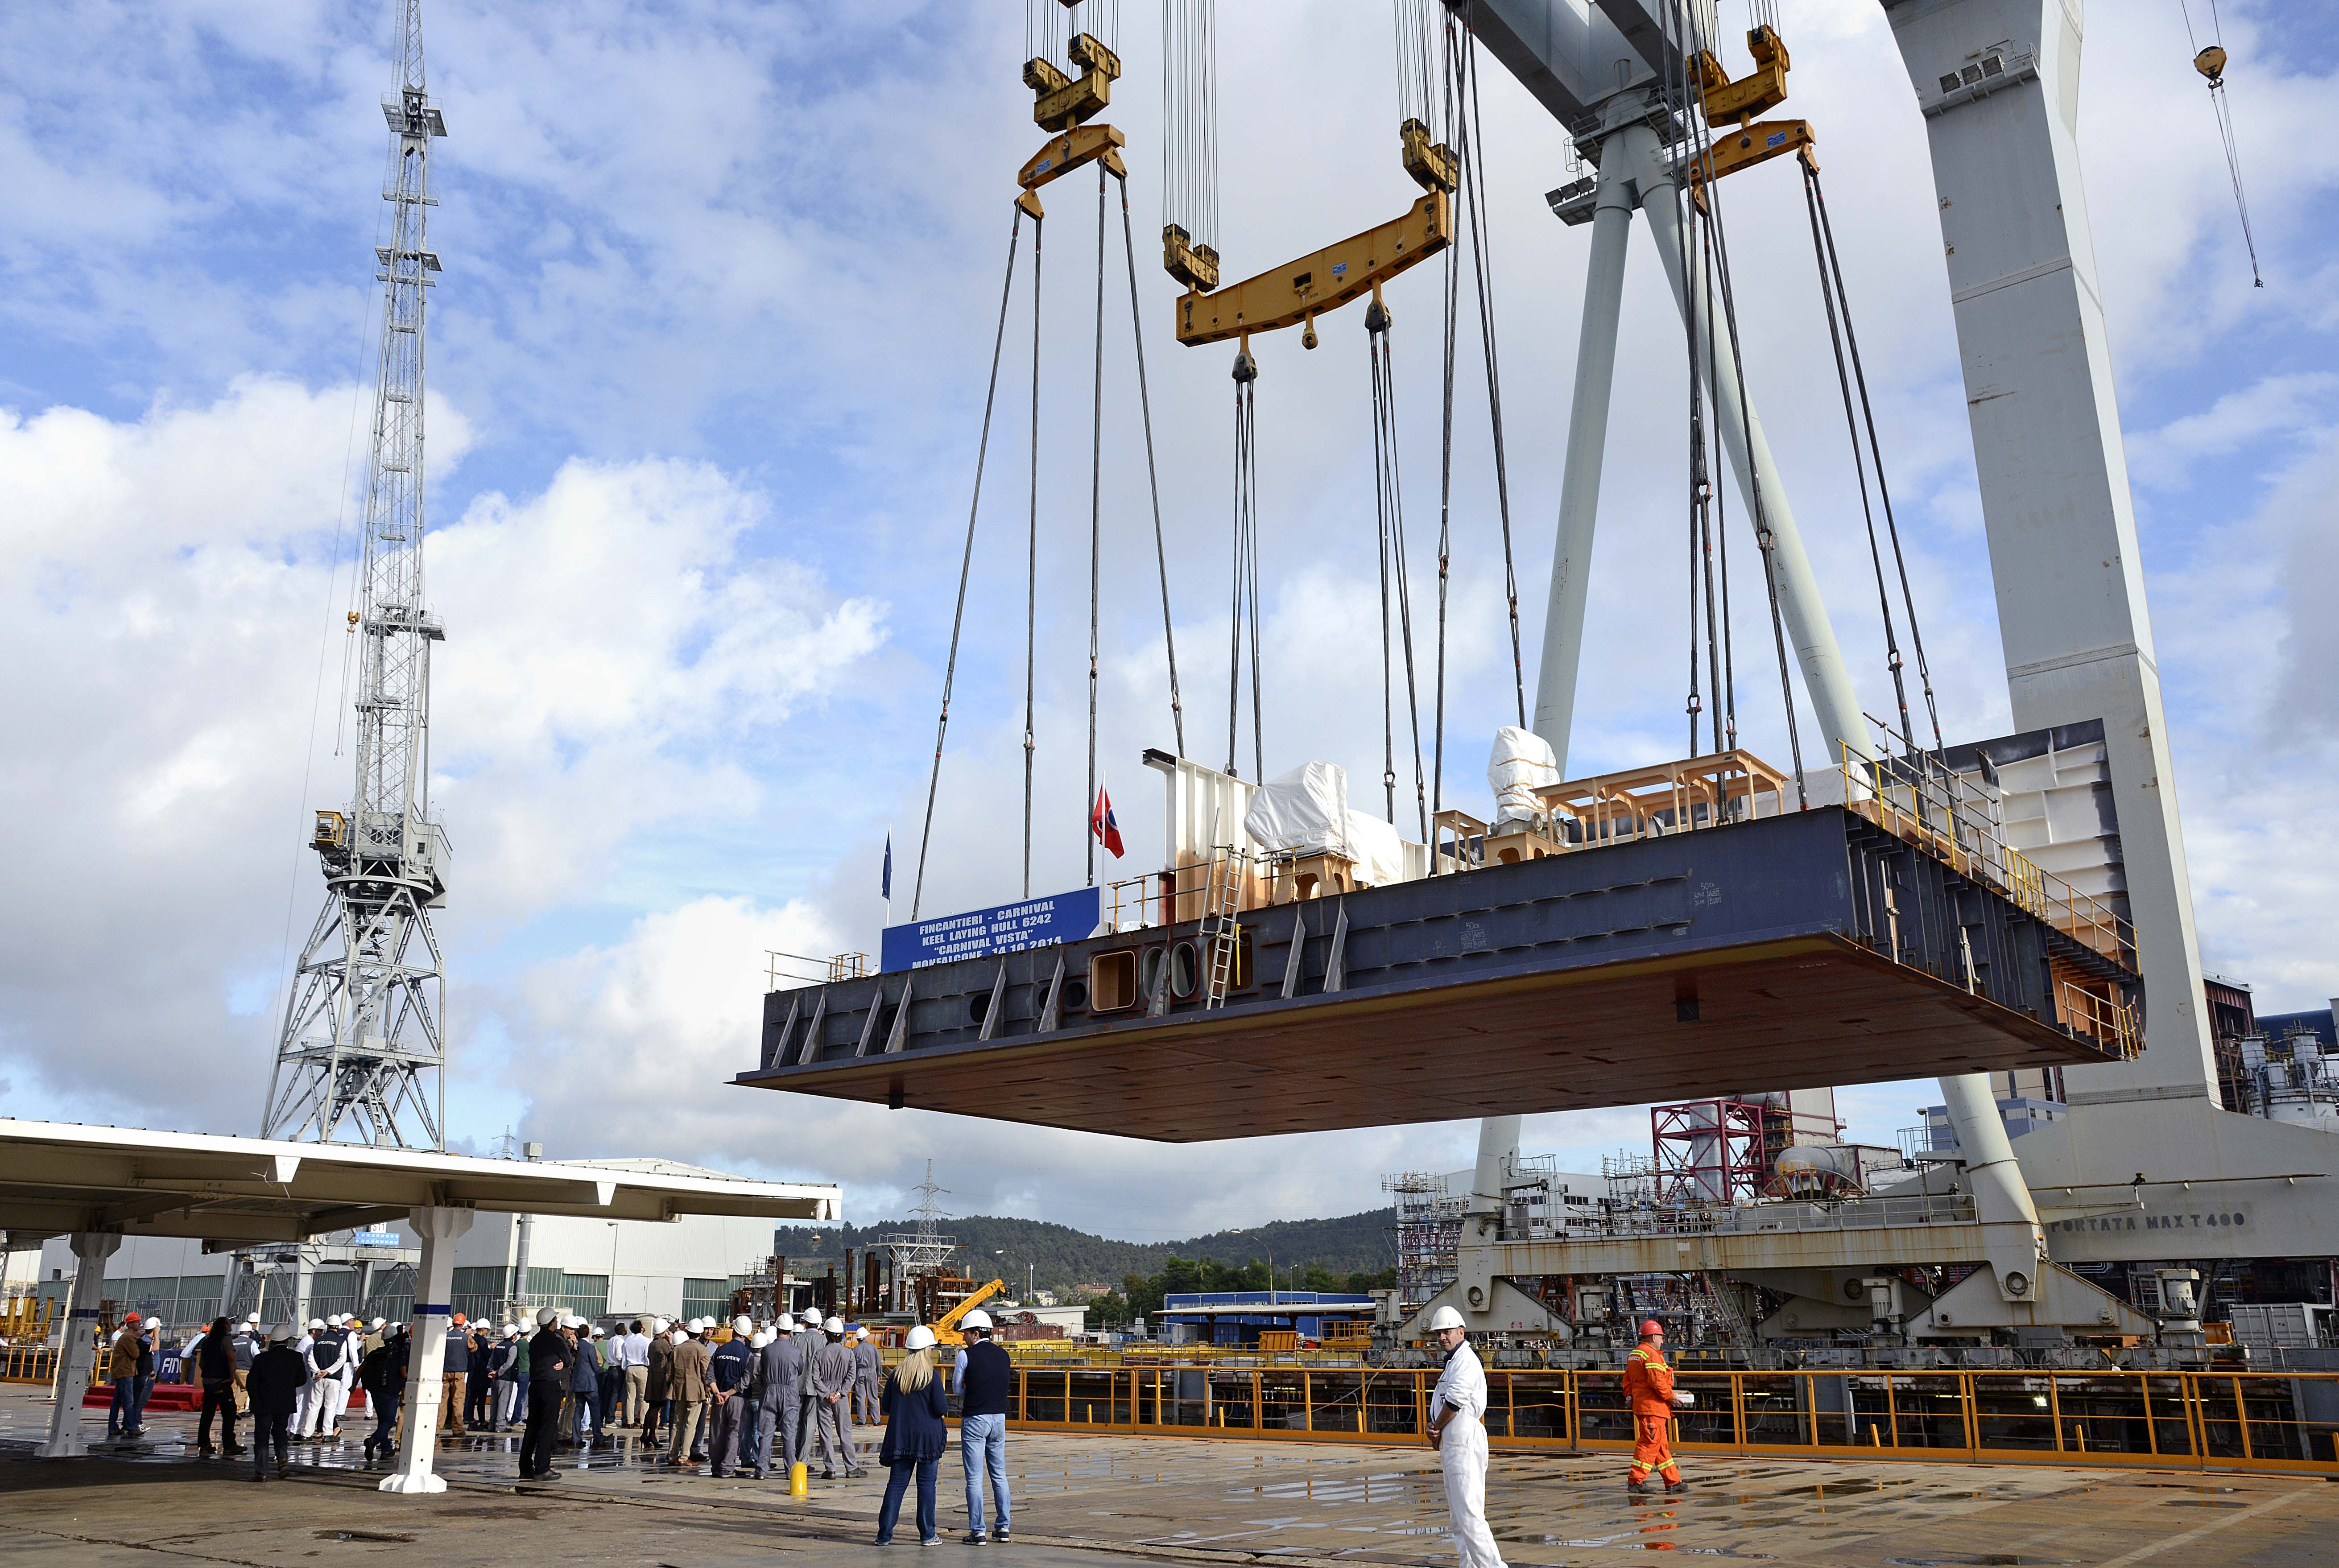 Keel-Laying Ceremony Held For New Carnival Vista; 133,500-Ton Ship Set To Debut In Spring 2016